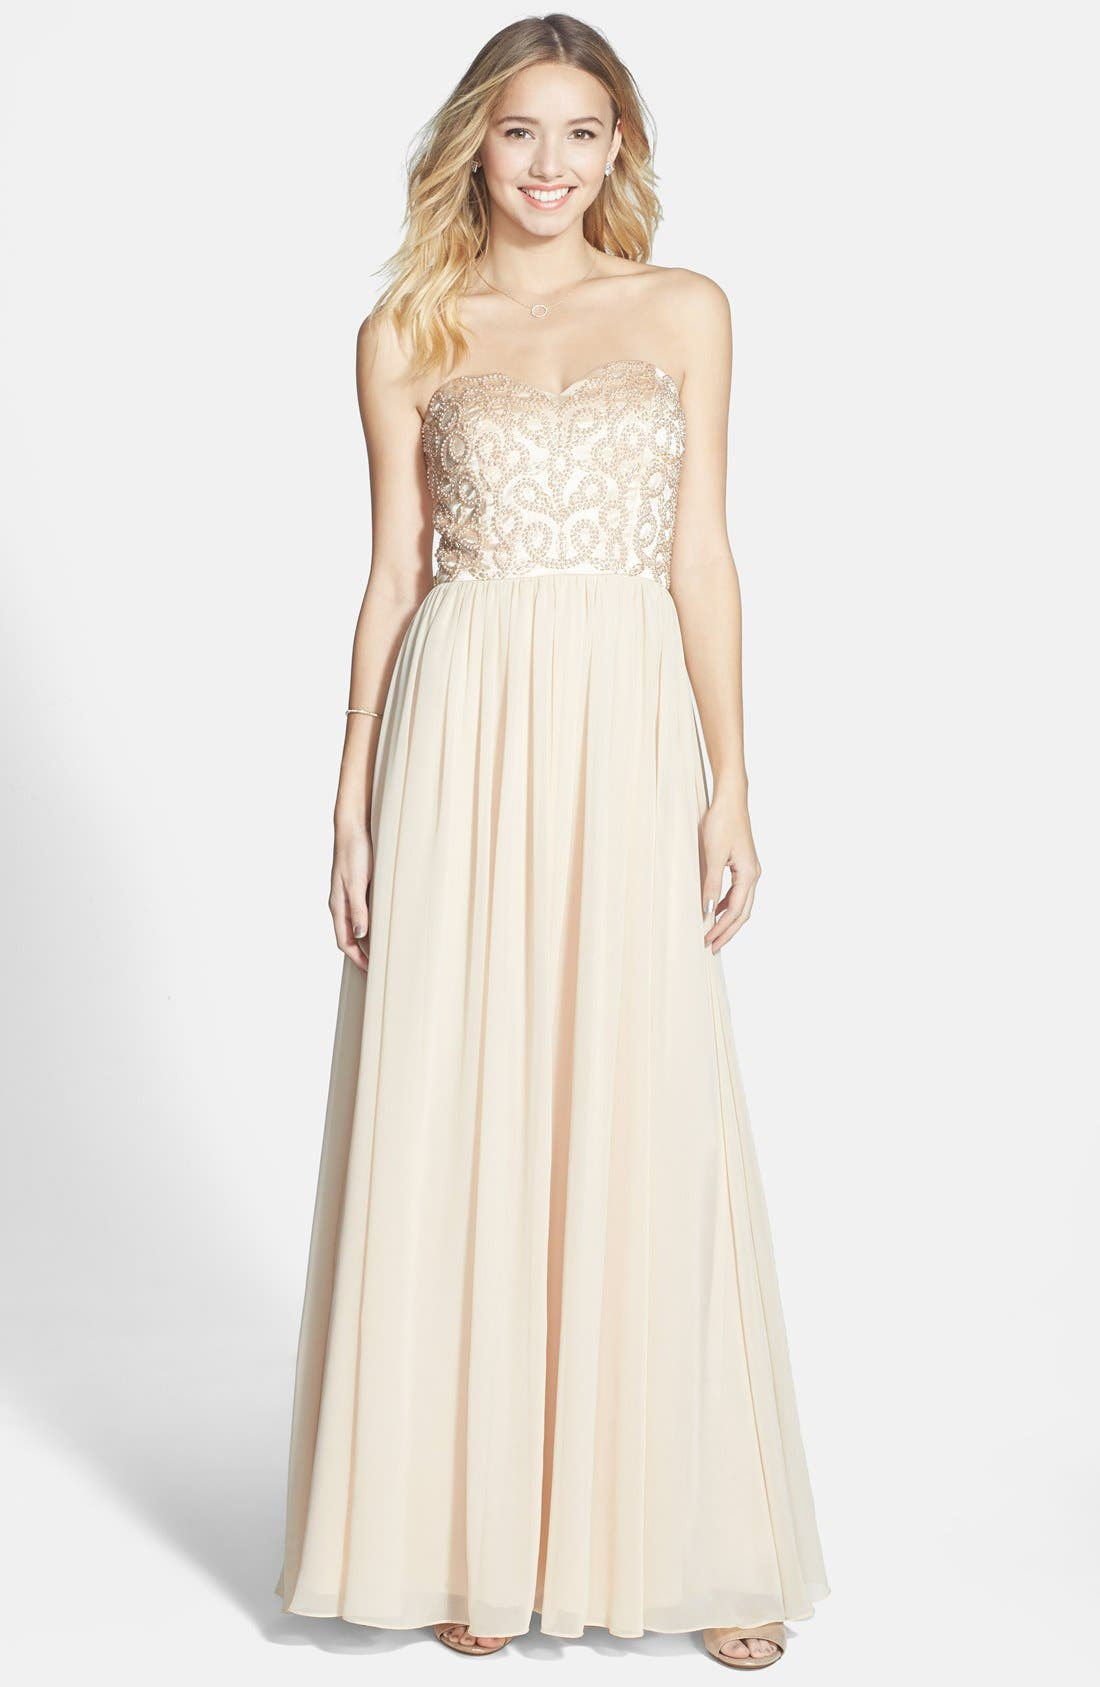 Main Image - Xscape Embellished Chiffon Fit & Flare Gown